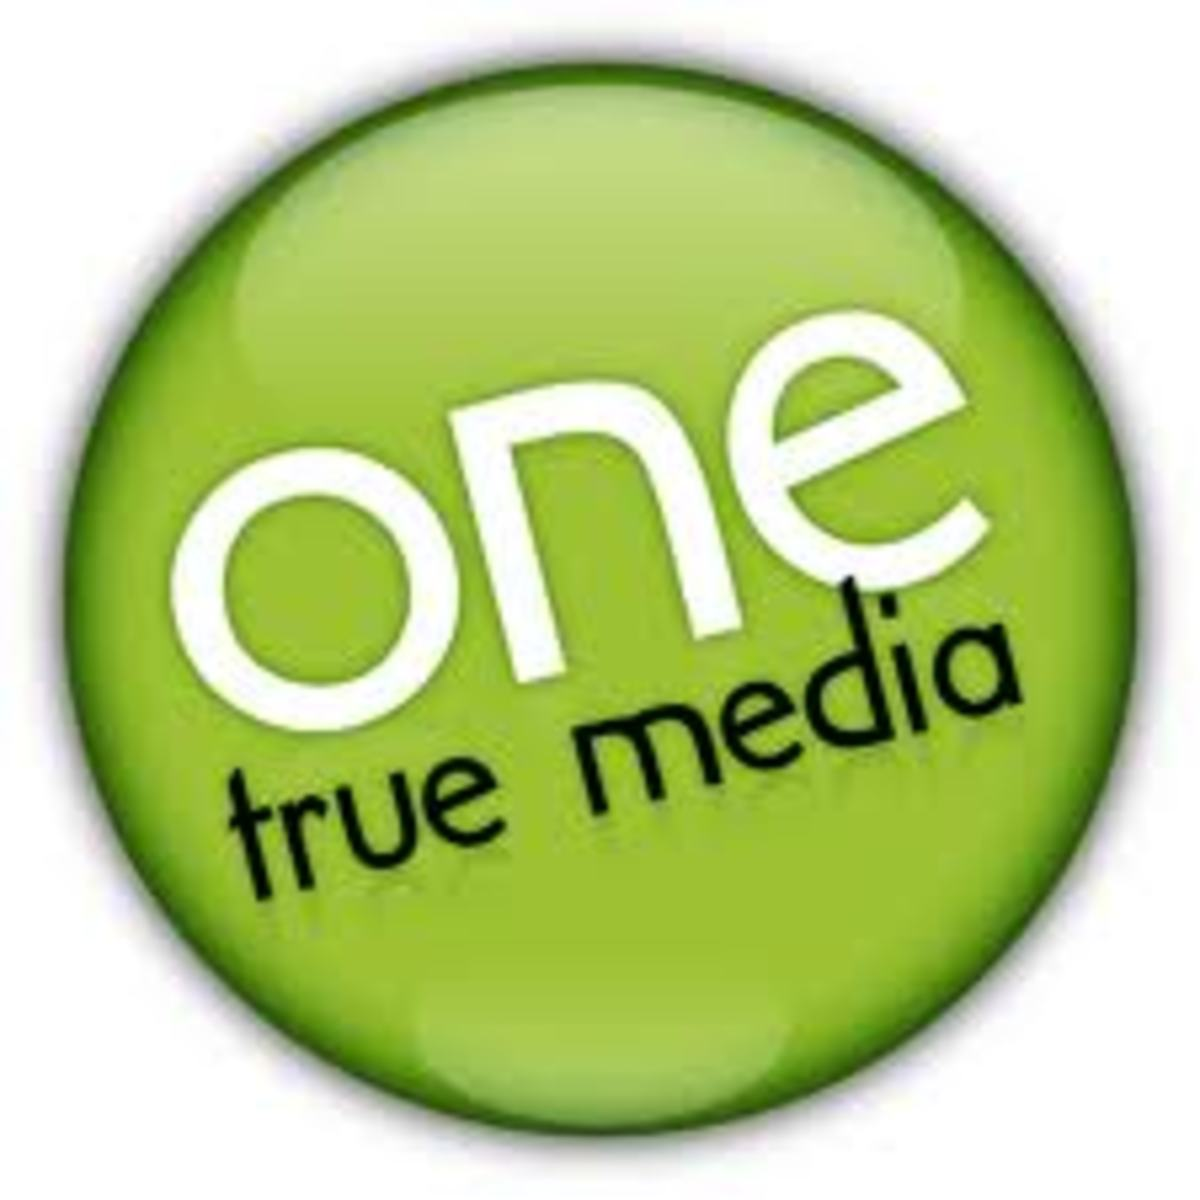 one-true-media-a-free-site-to-make-your-own-photo-or-video-montage